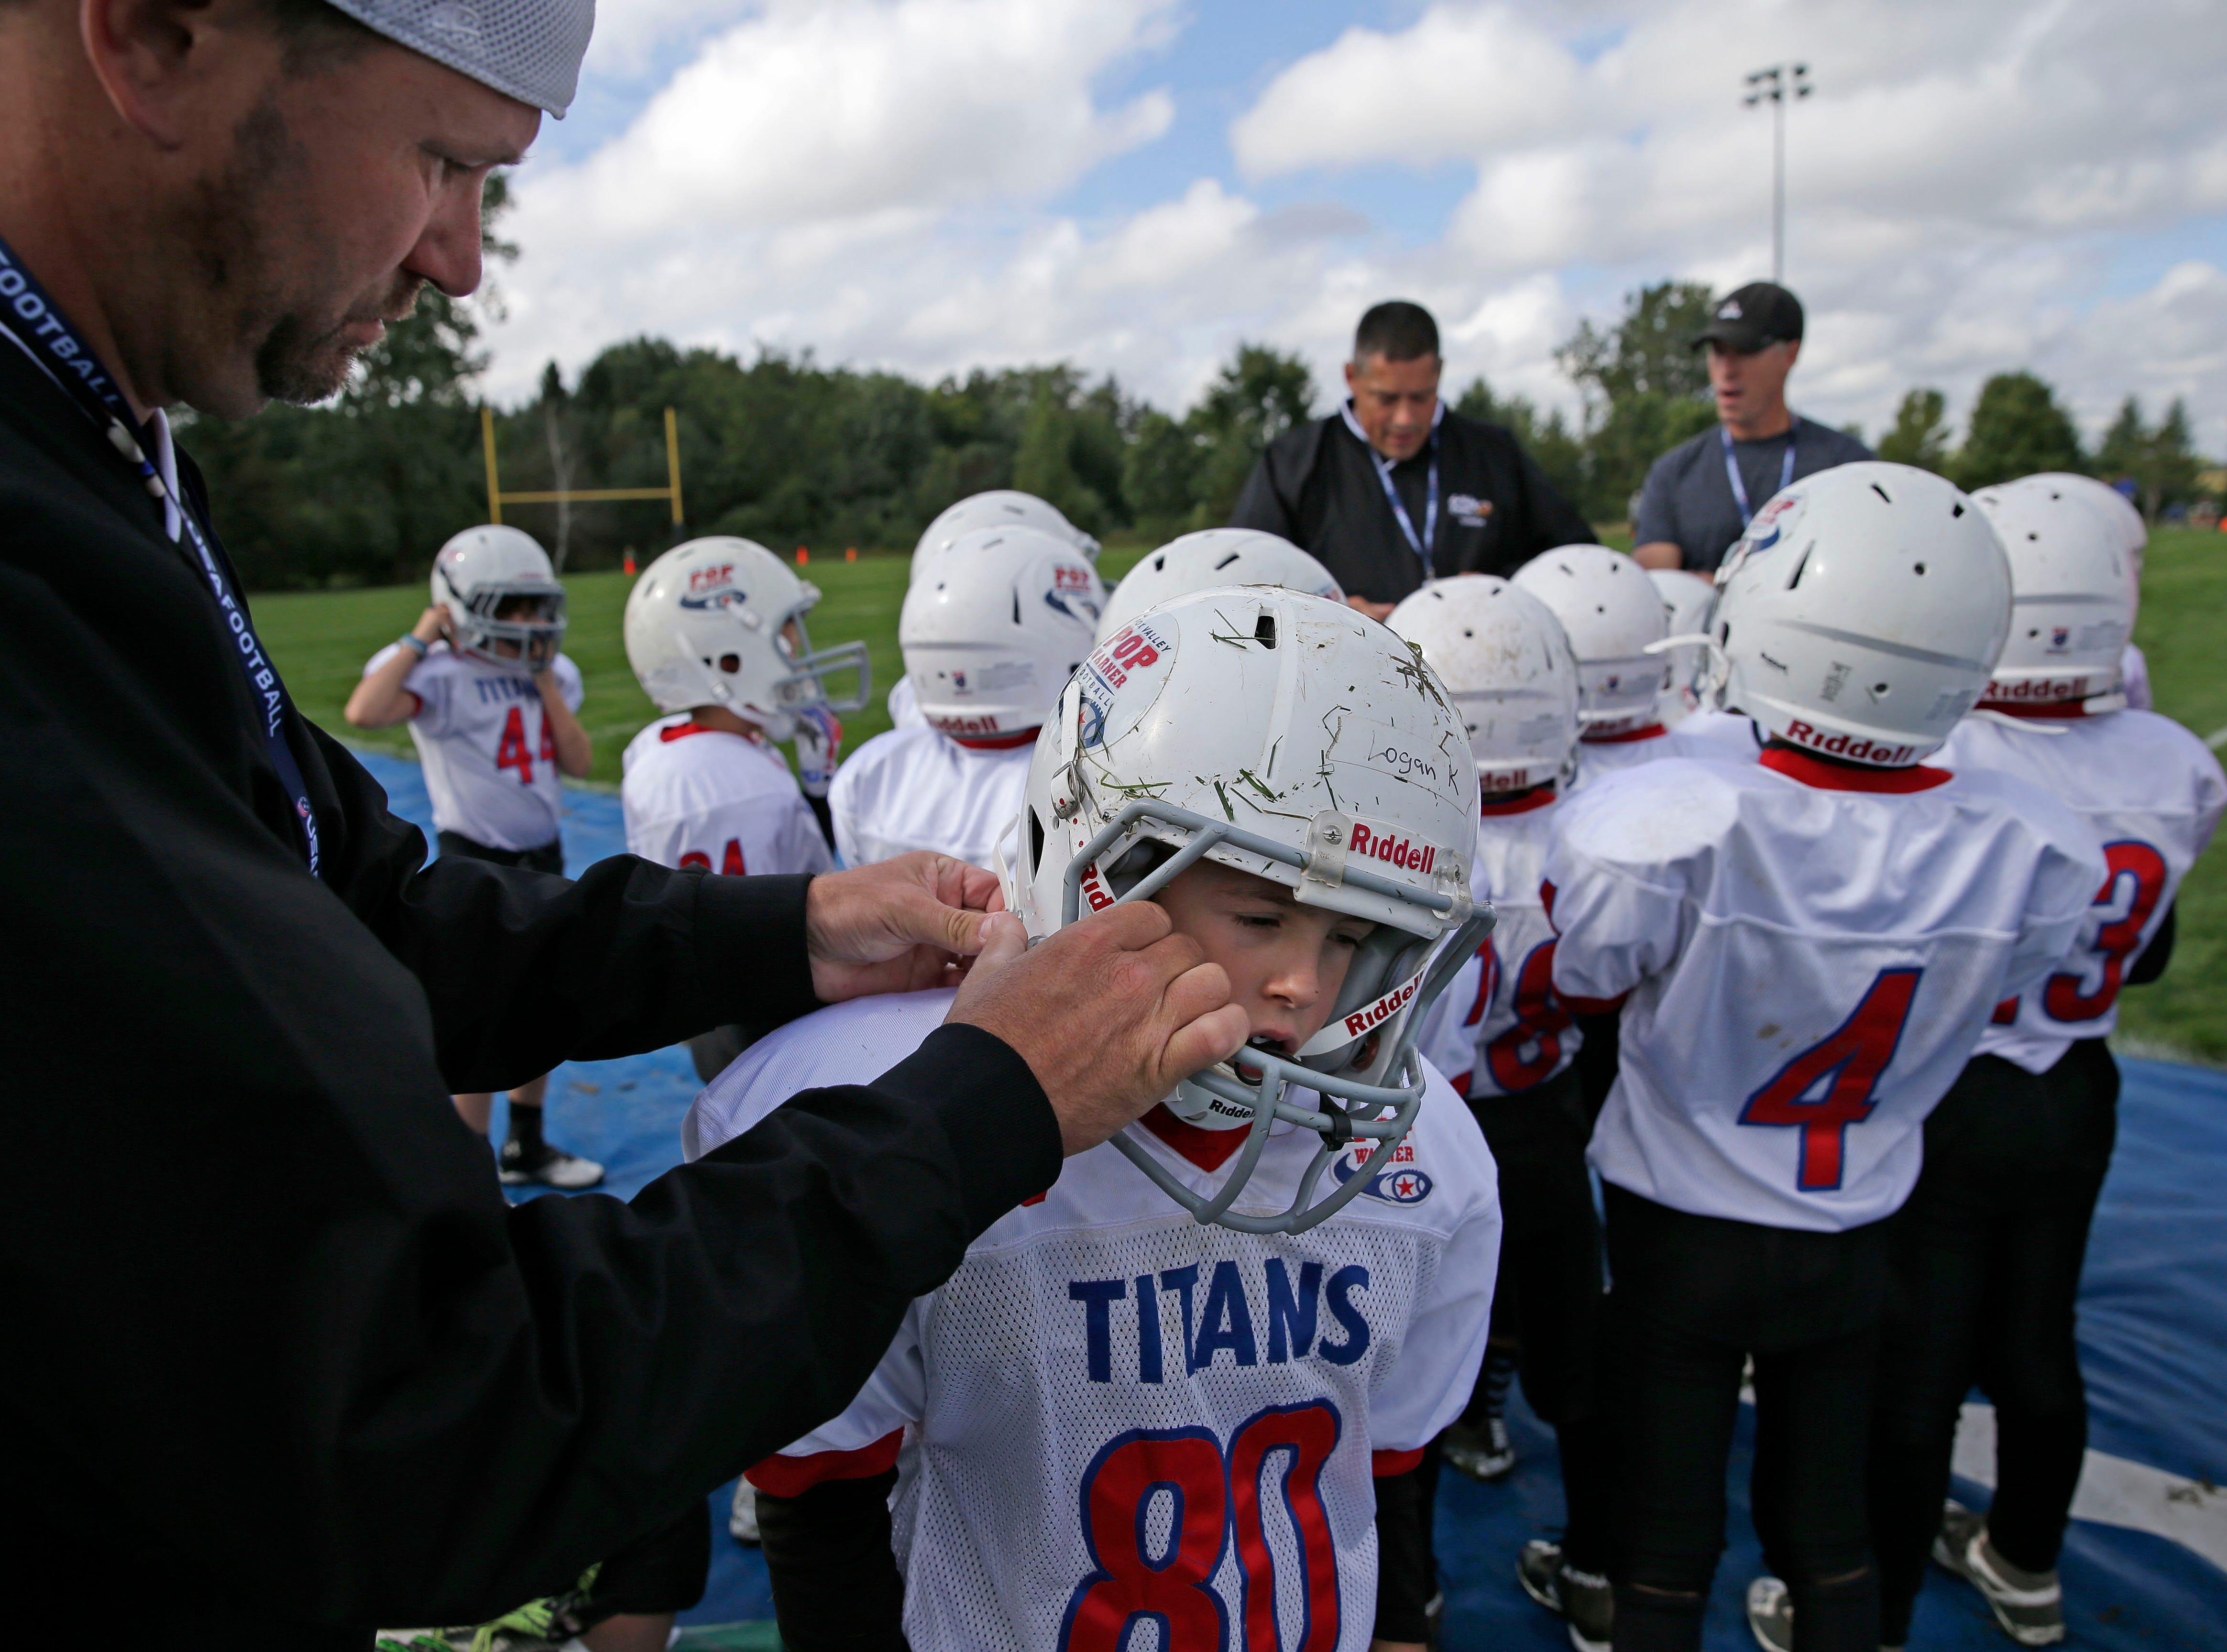 Logan Kittoe of the Titans gets help with his helmet as Fox Valley Pop Warner Football opens the season Saturday, September 8, 2018, at Plamann Park in Grand Chute, Wis.Ron Page/USA TODAY NETWORK-Wisconsin